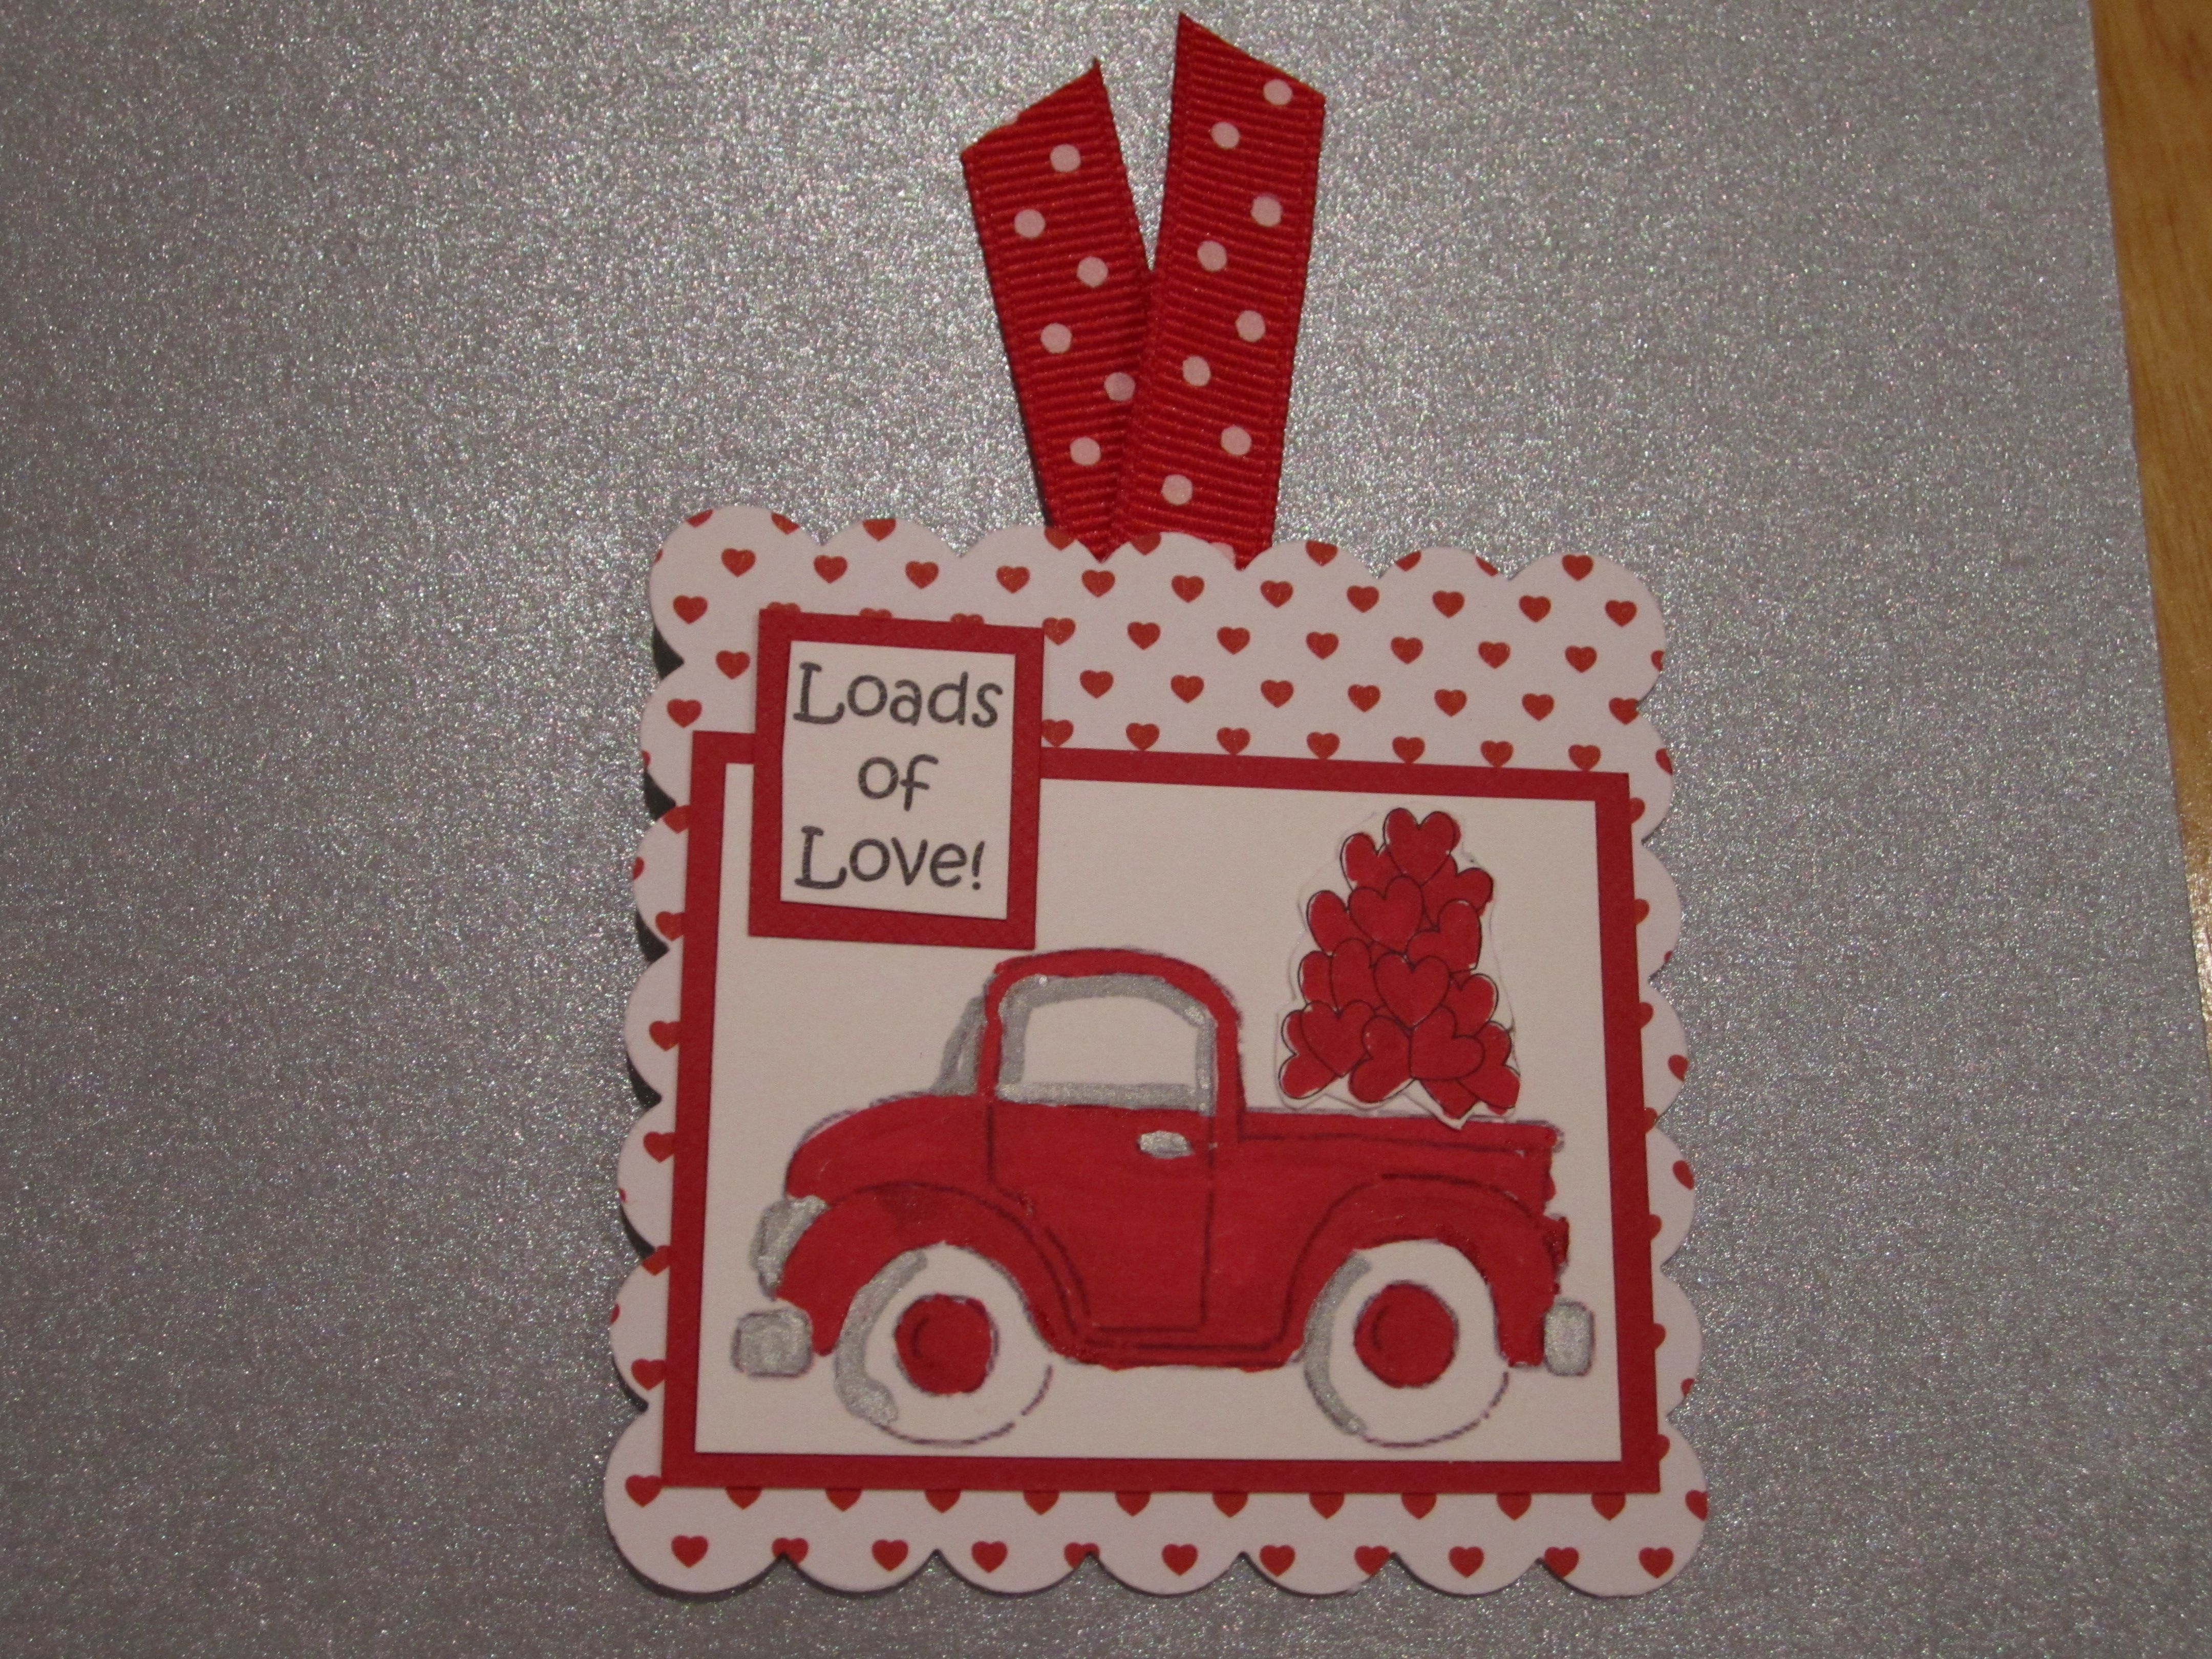 Loads of love cards pinterest cards cardmaking and card ideas